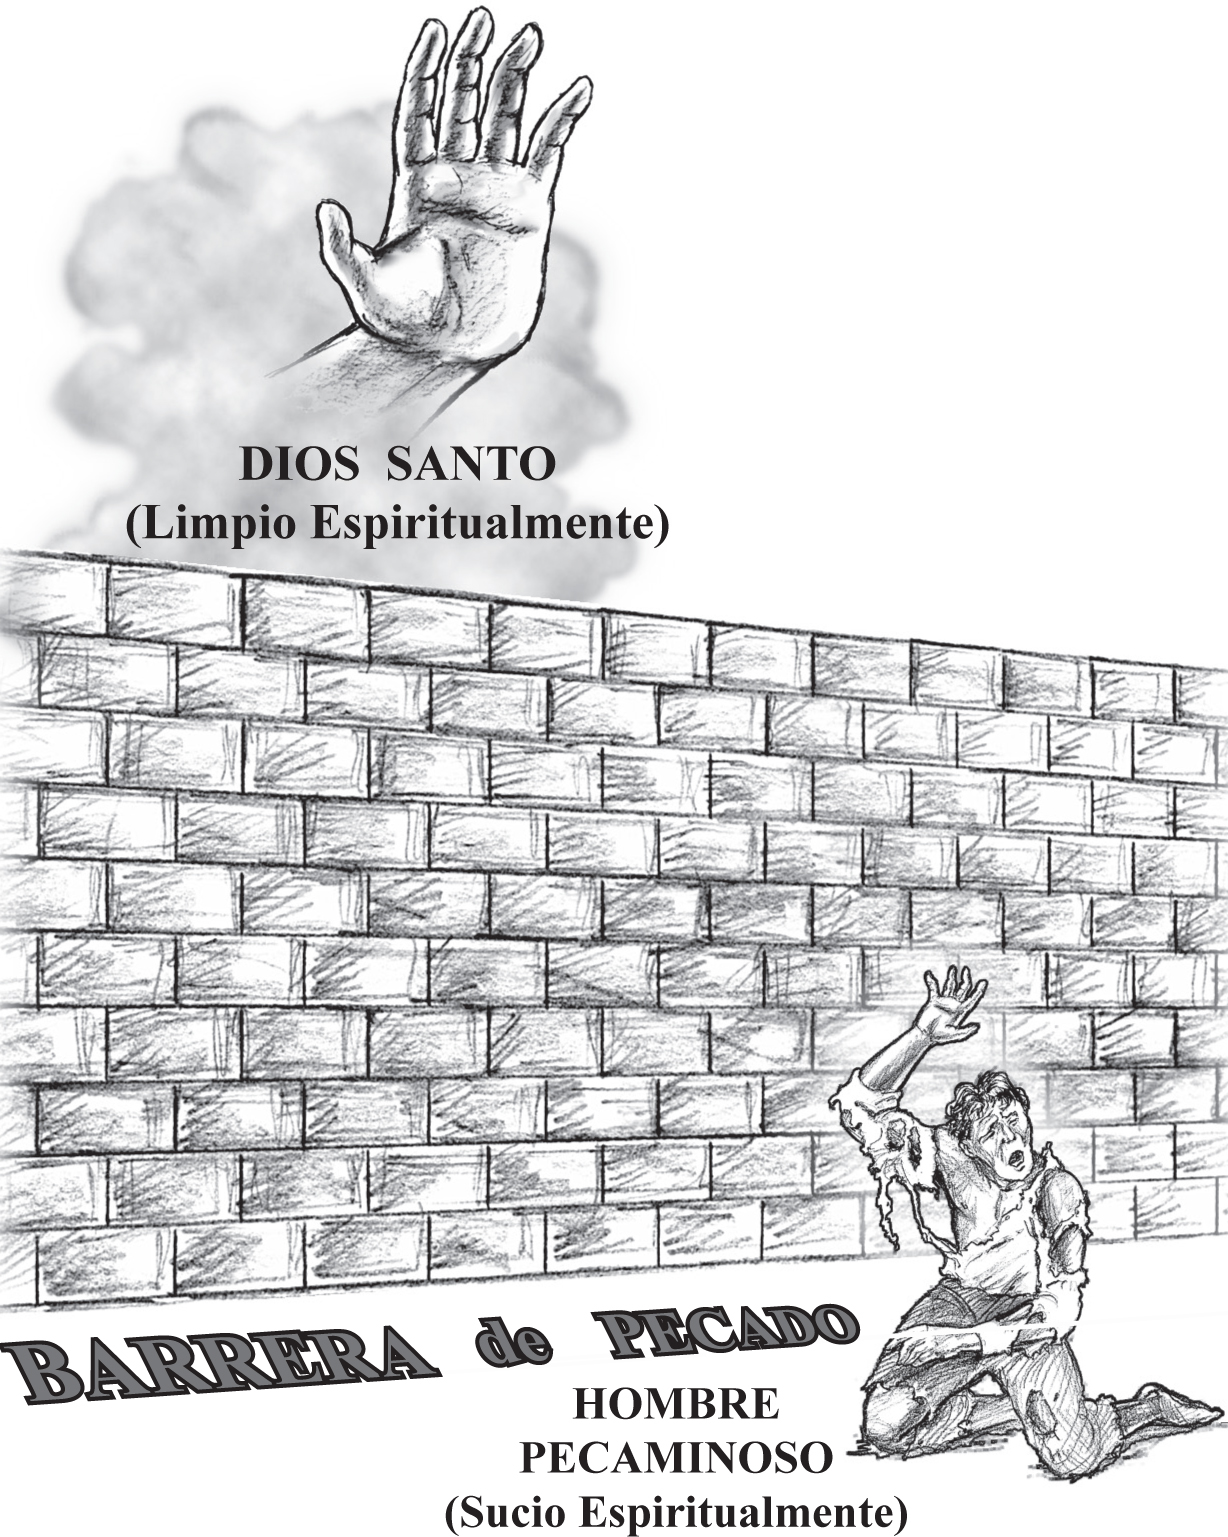 Gospel_Spanish_p_5_Man_at_Barrier